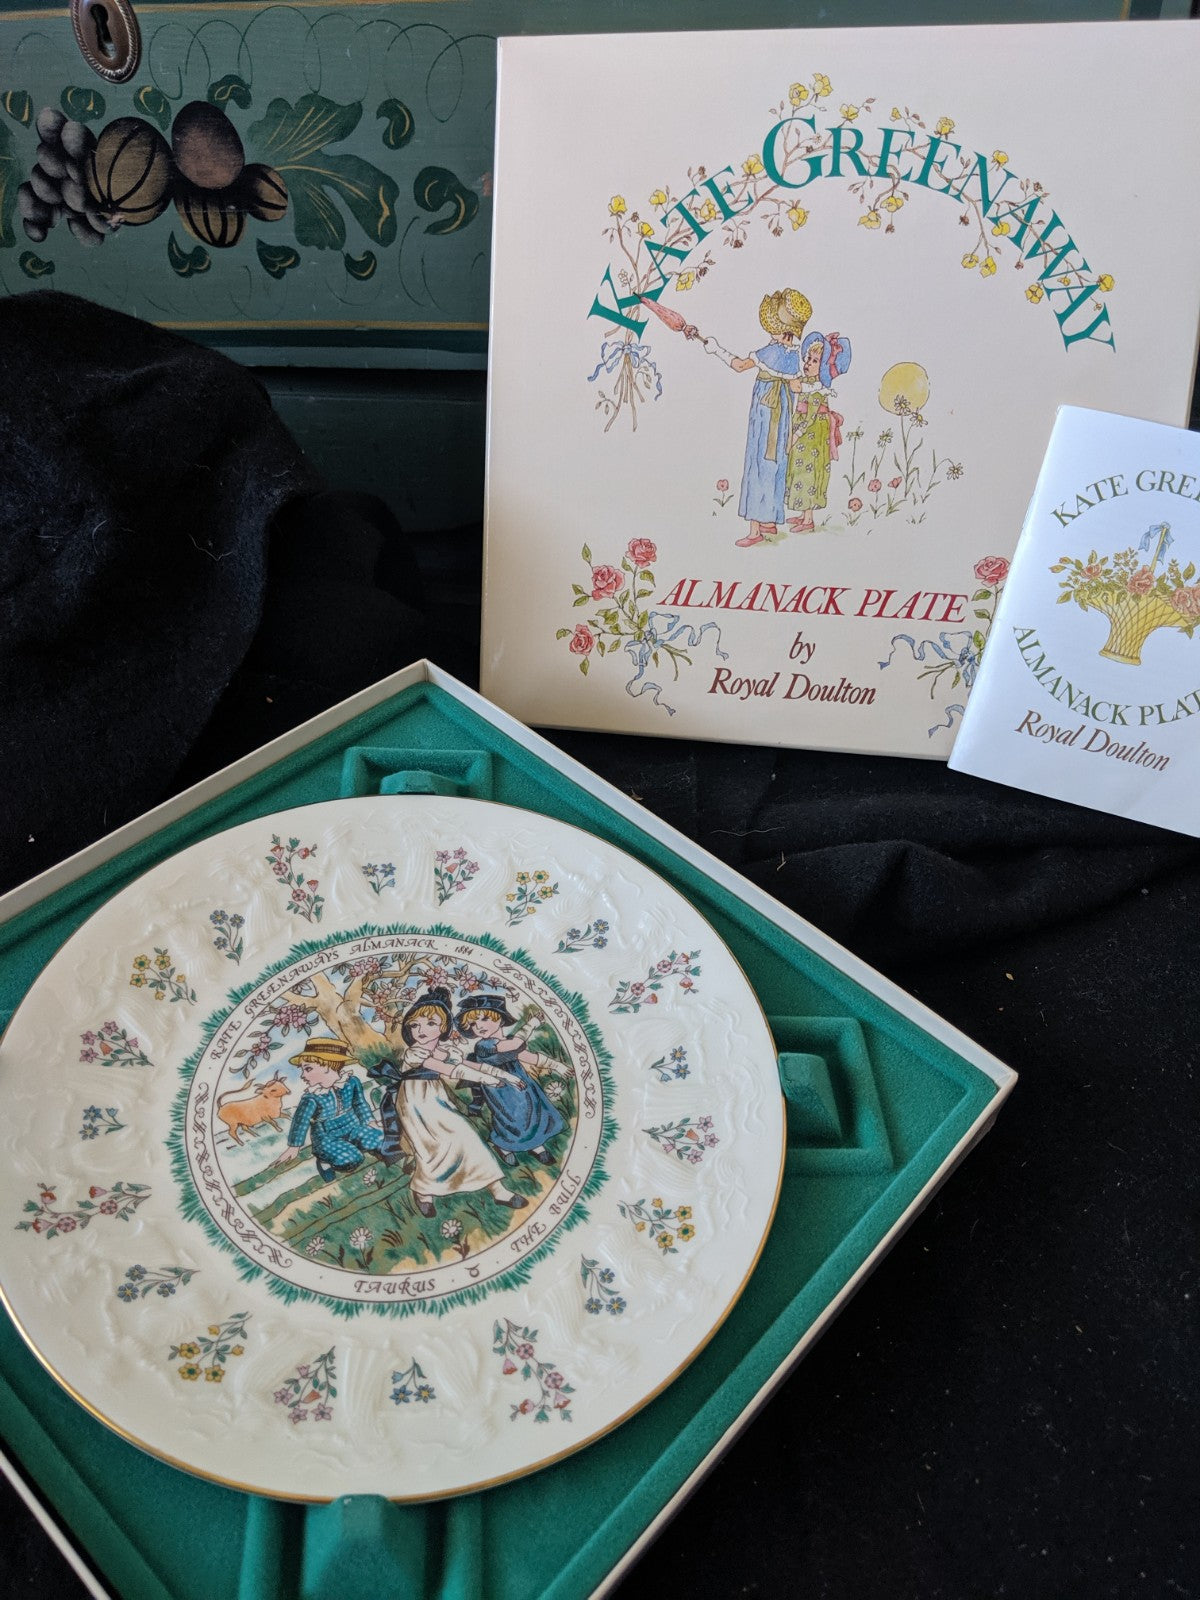 Kate Greenaway Almanack Plate by Royal Doulton -Taurus